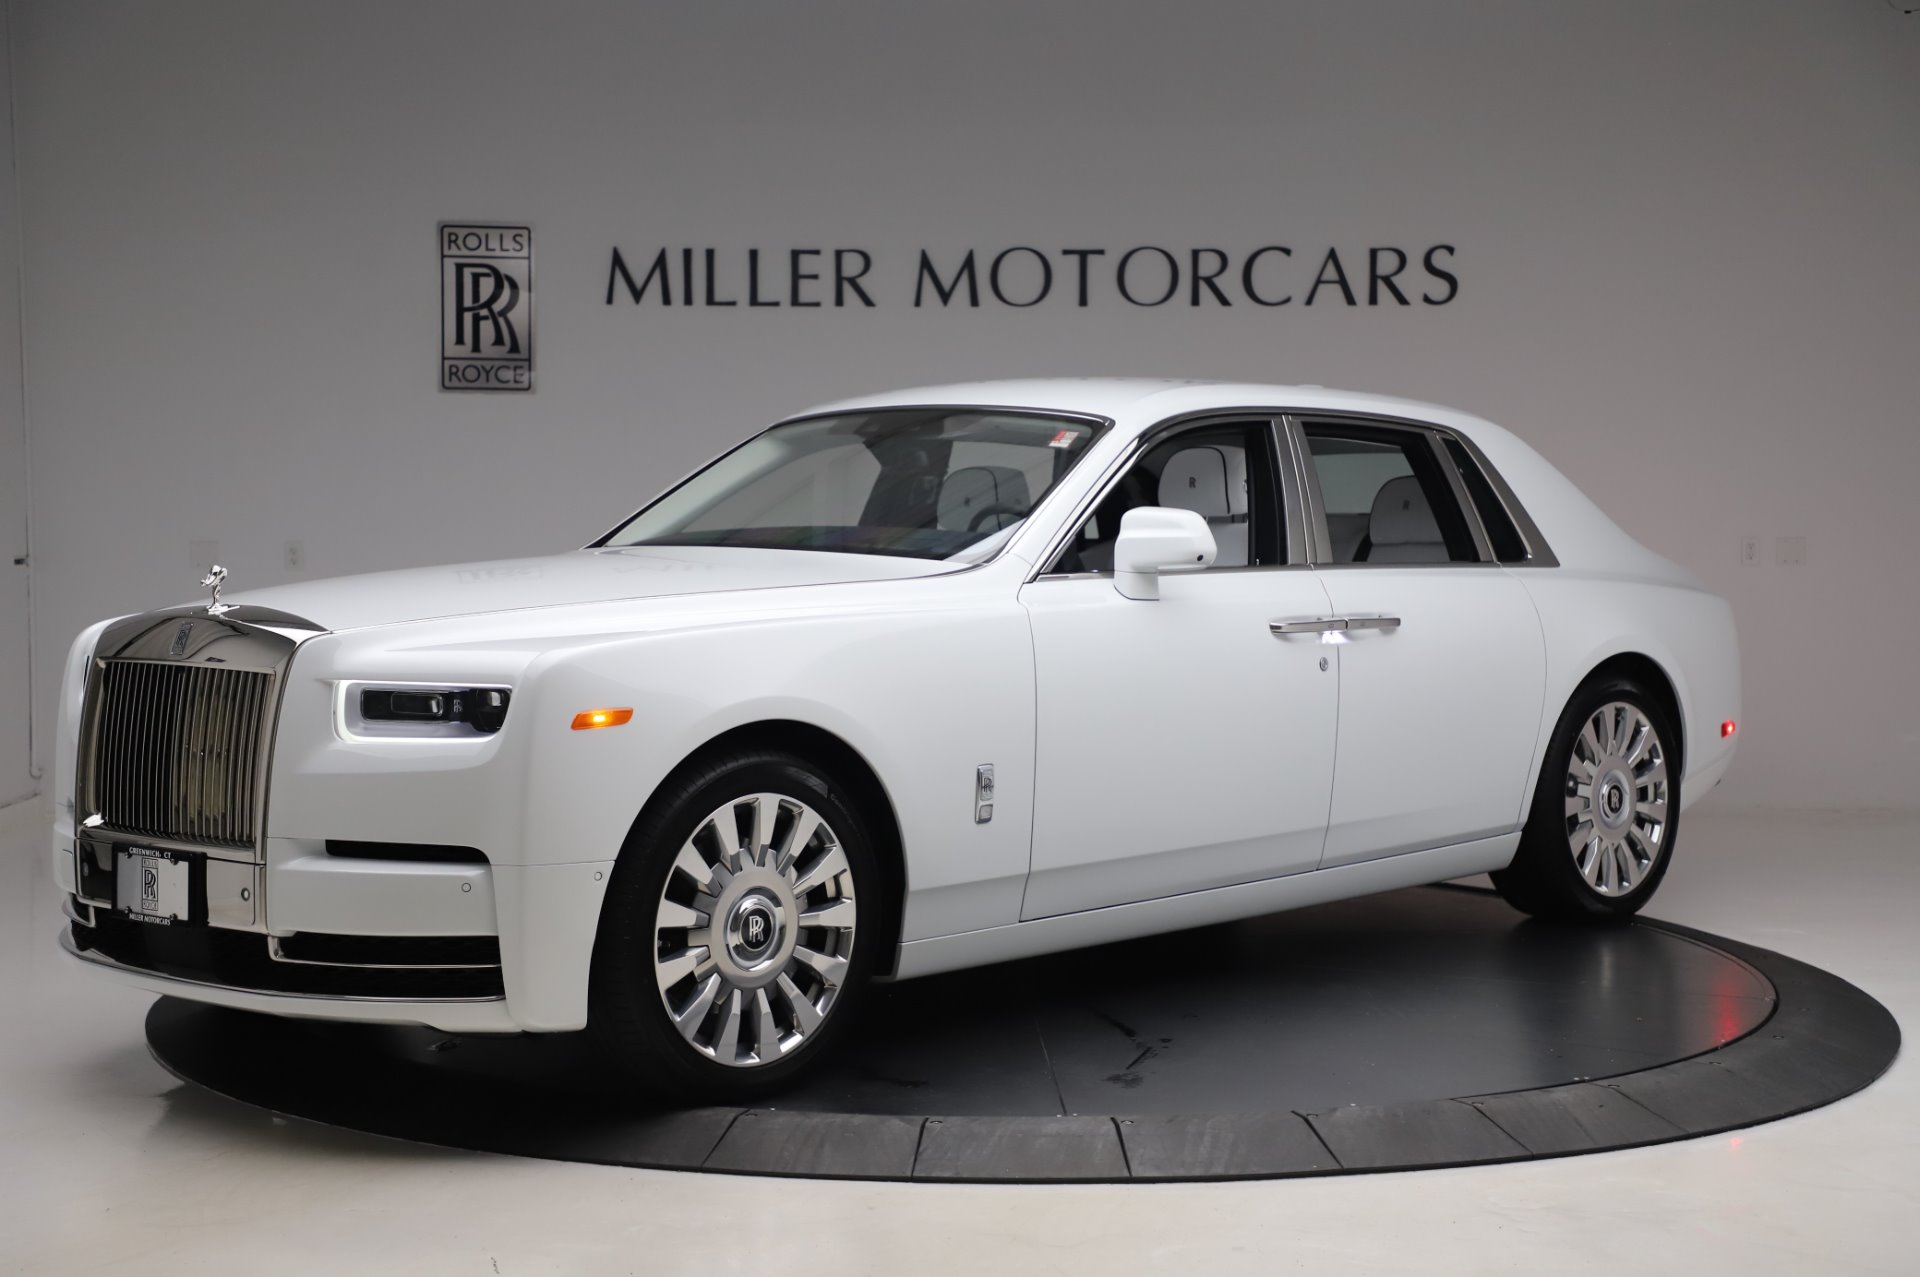 New 2020 Rolls-Royce Phantom for sale $545,200 at Aston Martin of Greenwich in Greenwich CT 06830 1